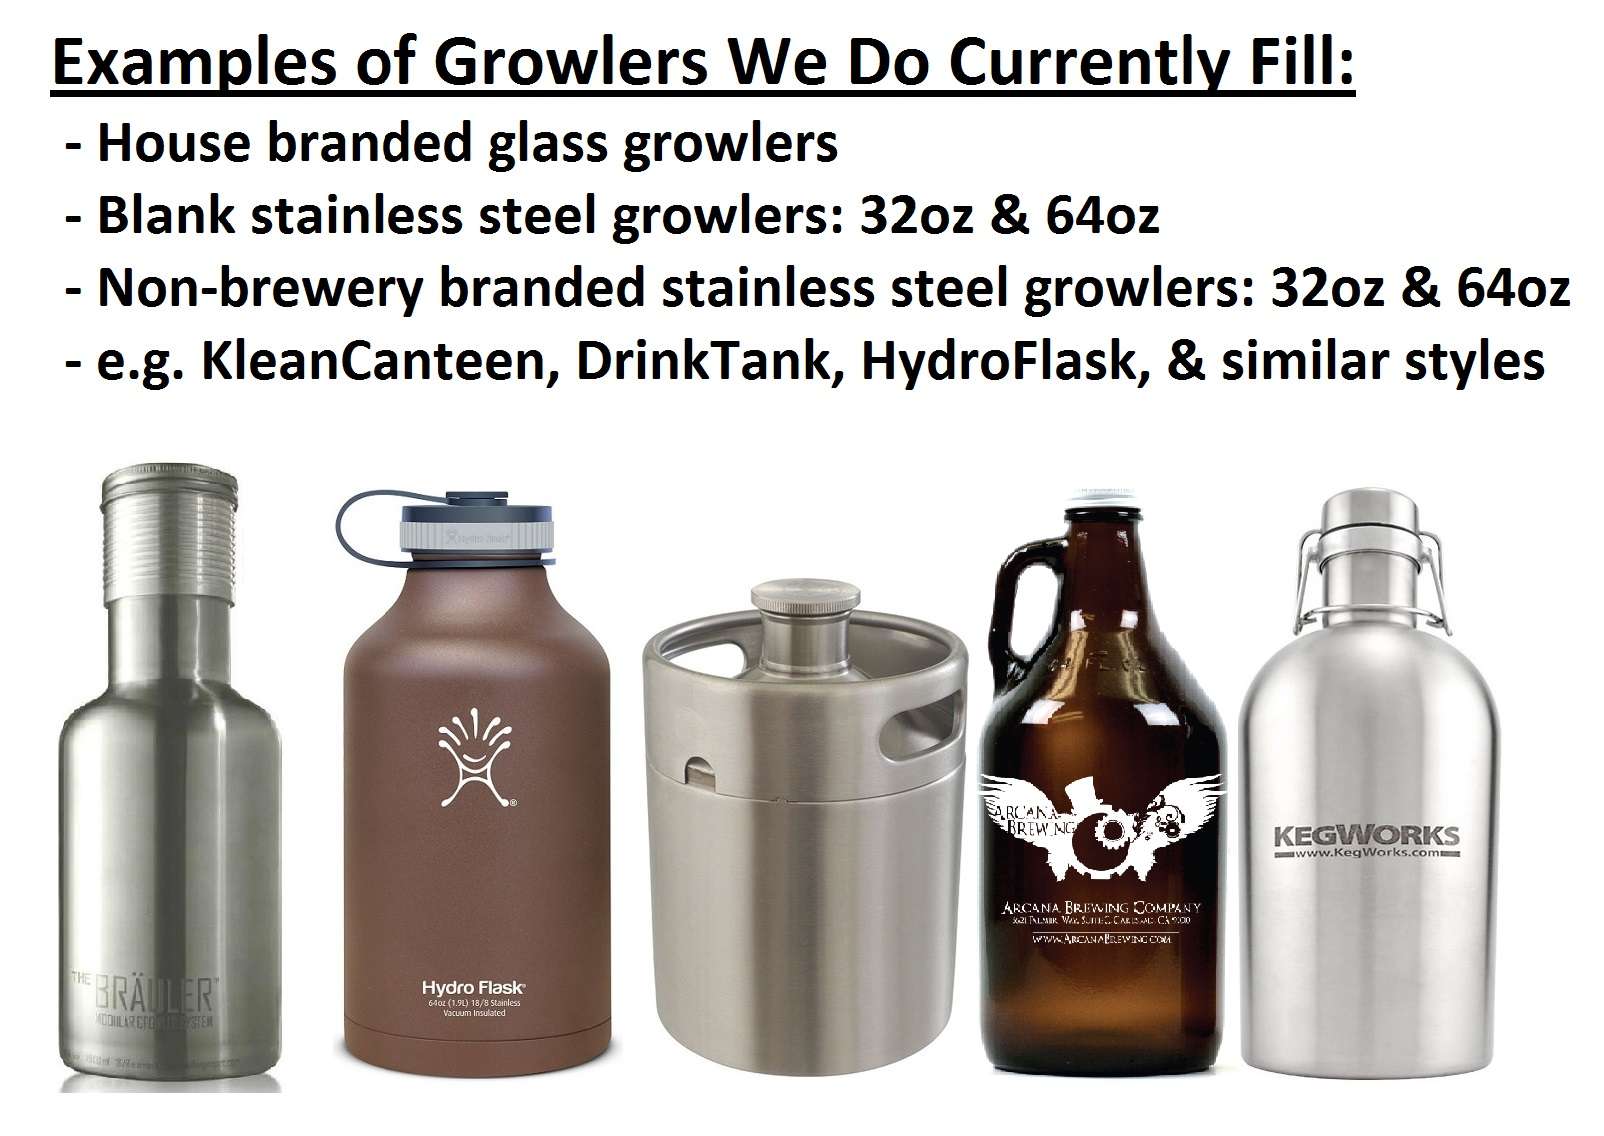 Will Fill Growler Examples 20140419